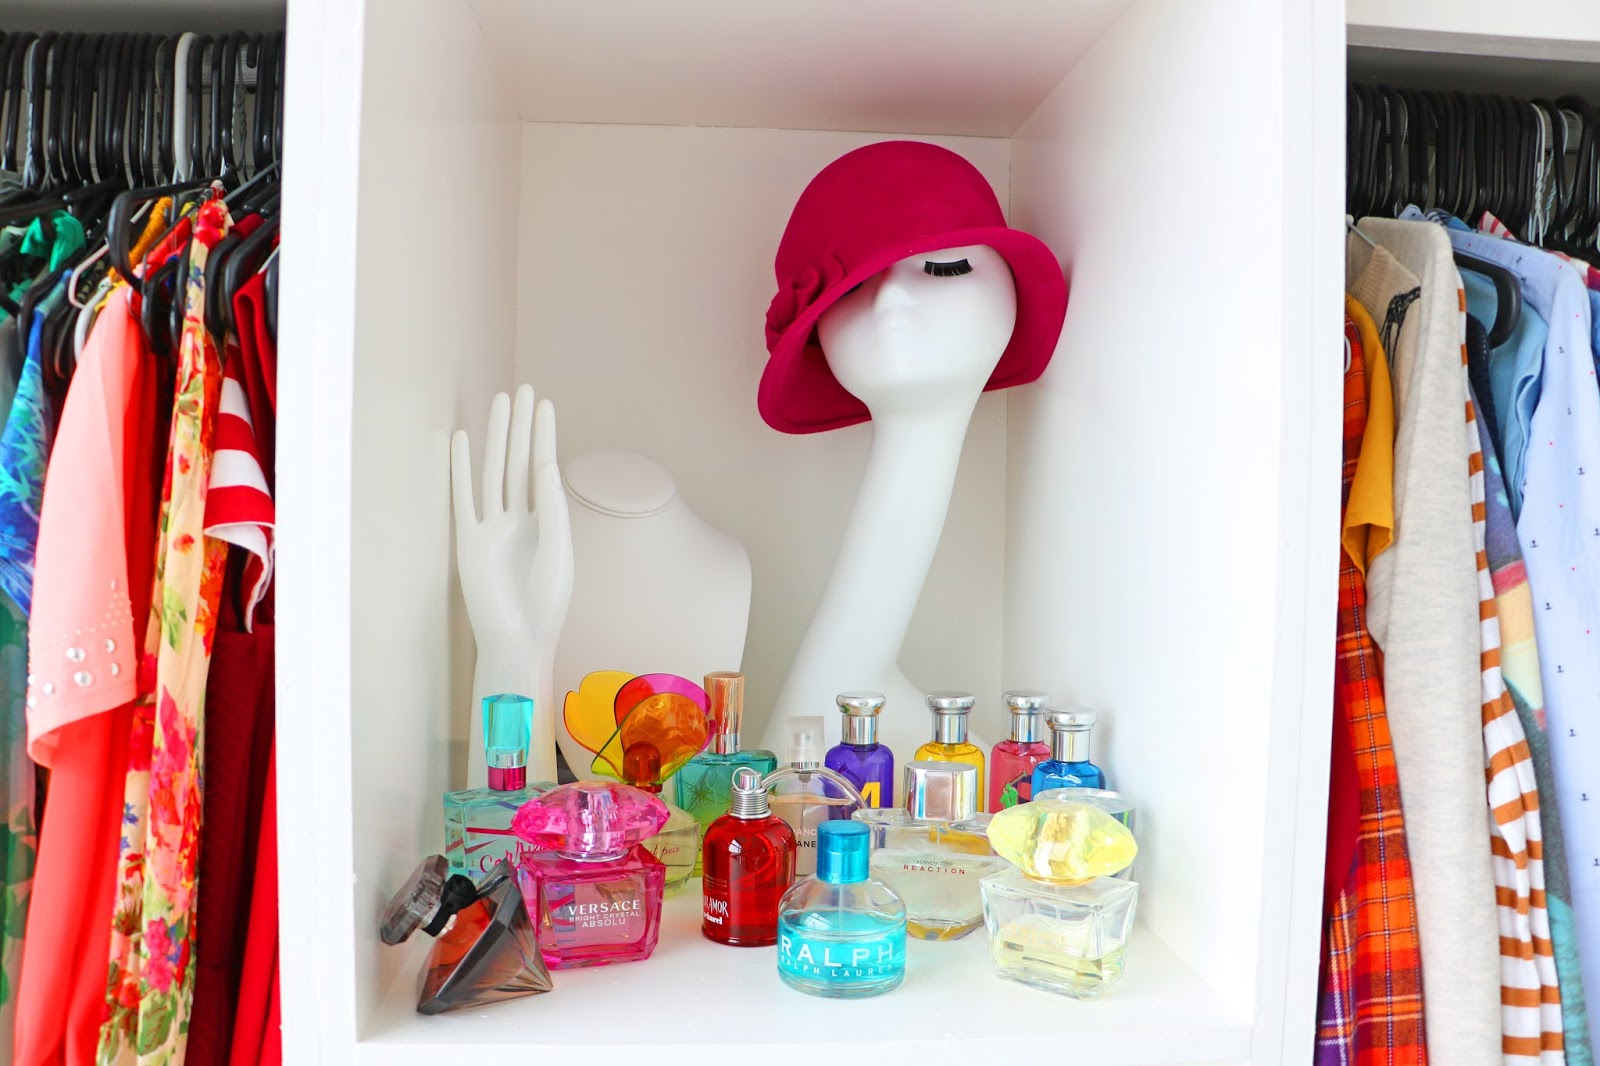 Display pretty perfume bottles as art in your closet!